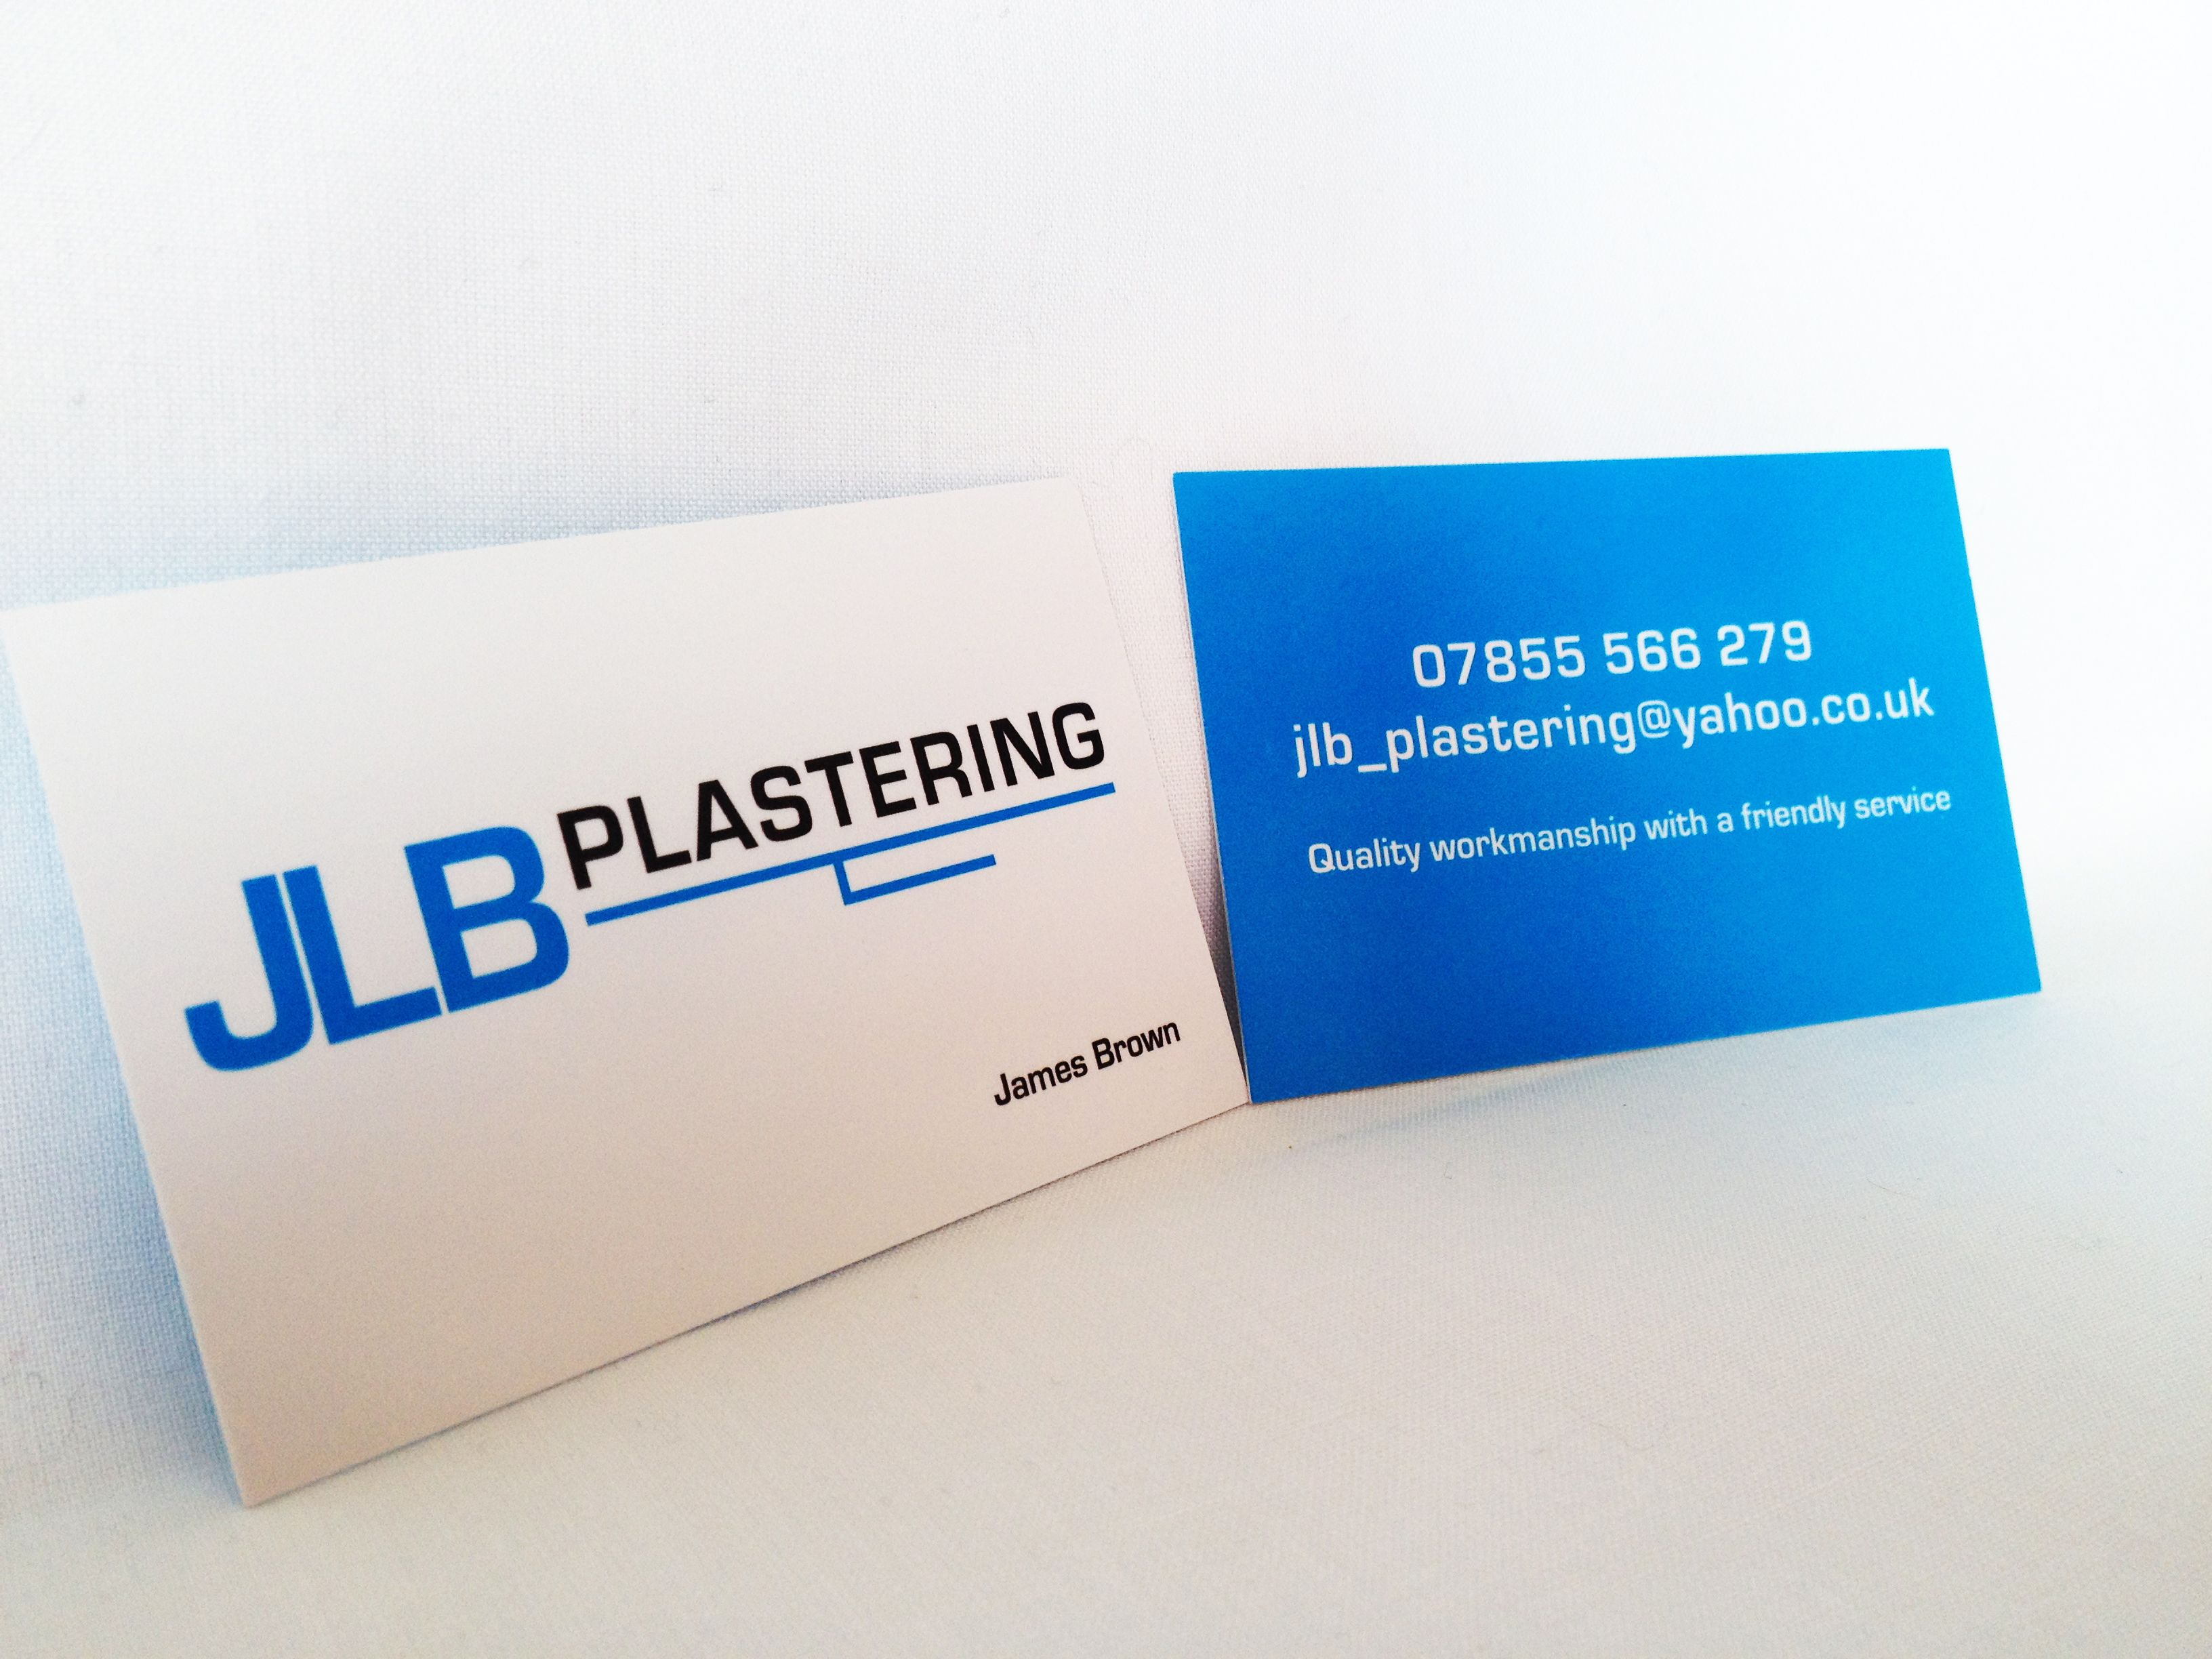 New jlb plastering business cards and logo design logo pinterest new jlb plastering business cards and logo design reheart Image collections